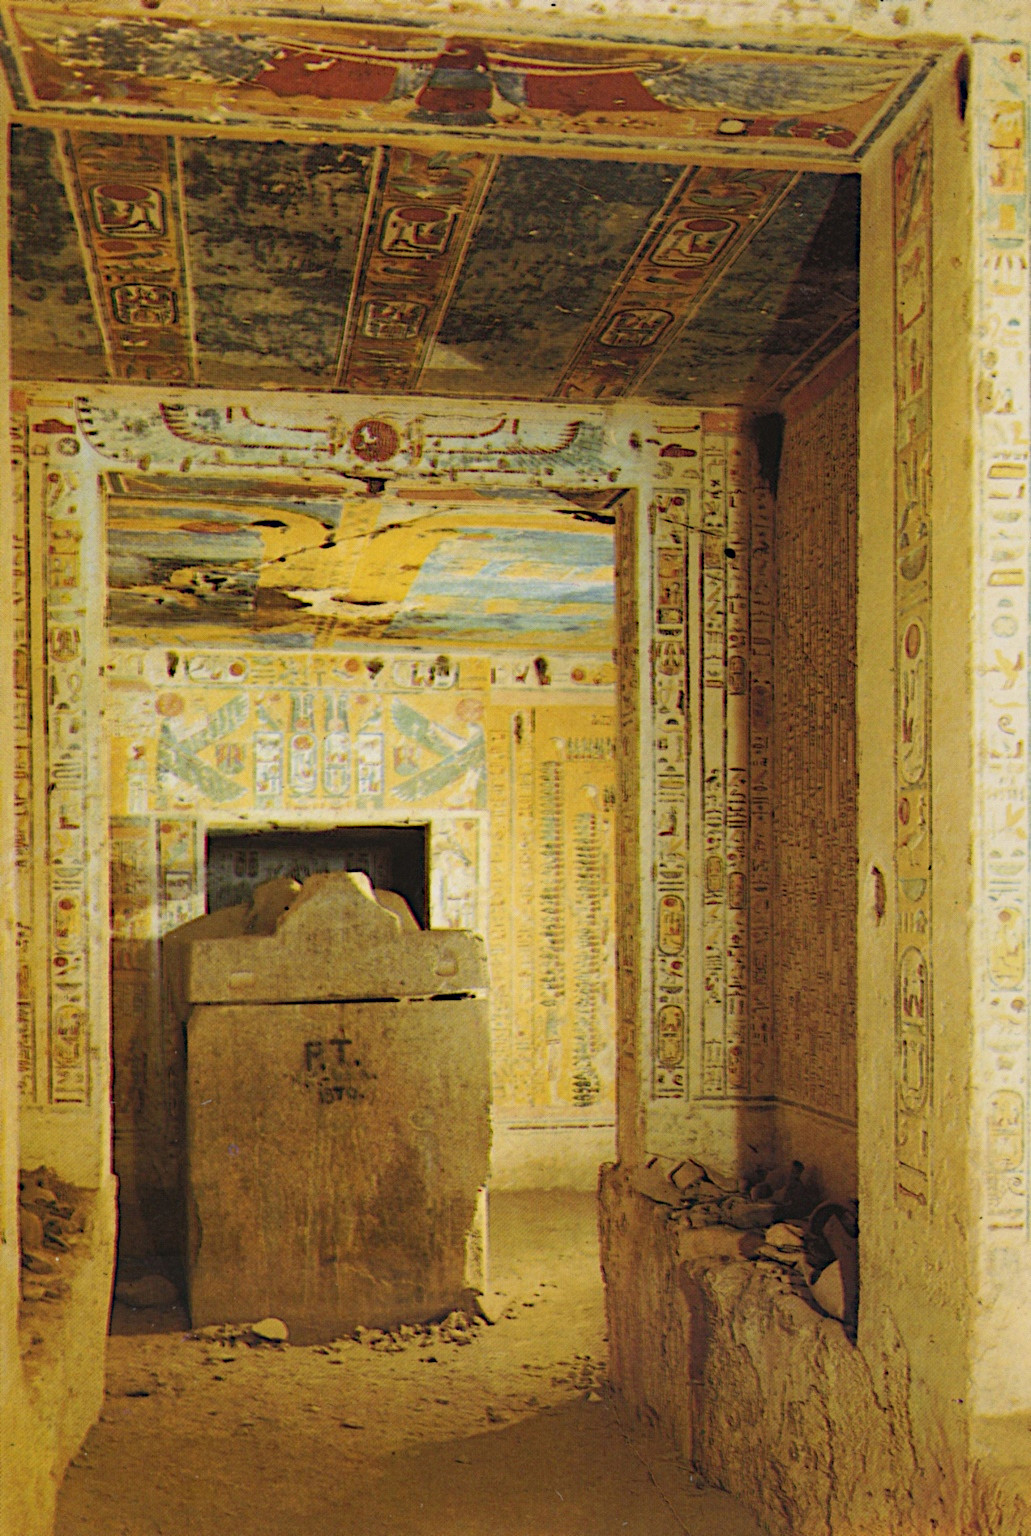 a study on pharaohs and egyptian tombs Tomb in giza pyramid is protected by a 'primitive machine' built by the ancient egyptians to deter robbers from looting the tombs of great pharaohs, ancient egyptians may have constructed primitive machines inside the pyramids to defend royal funerary chambers.